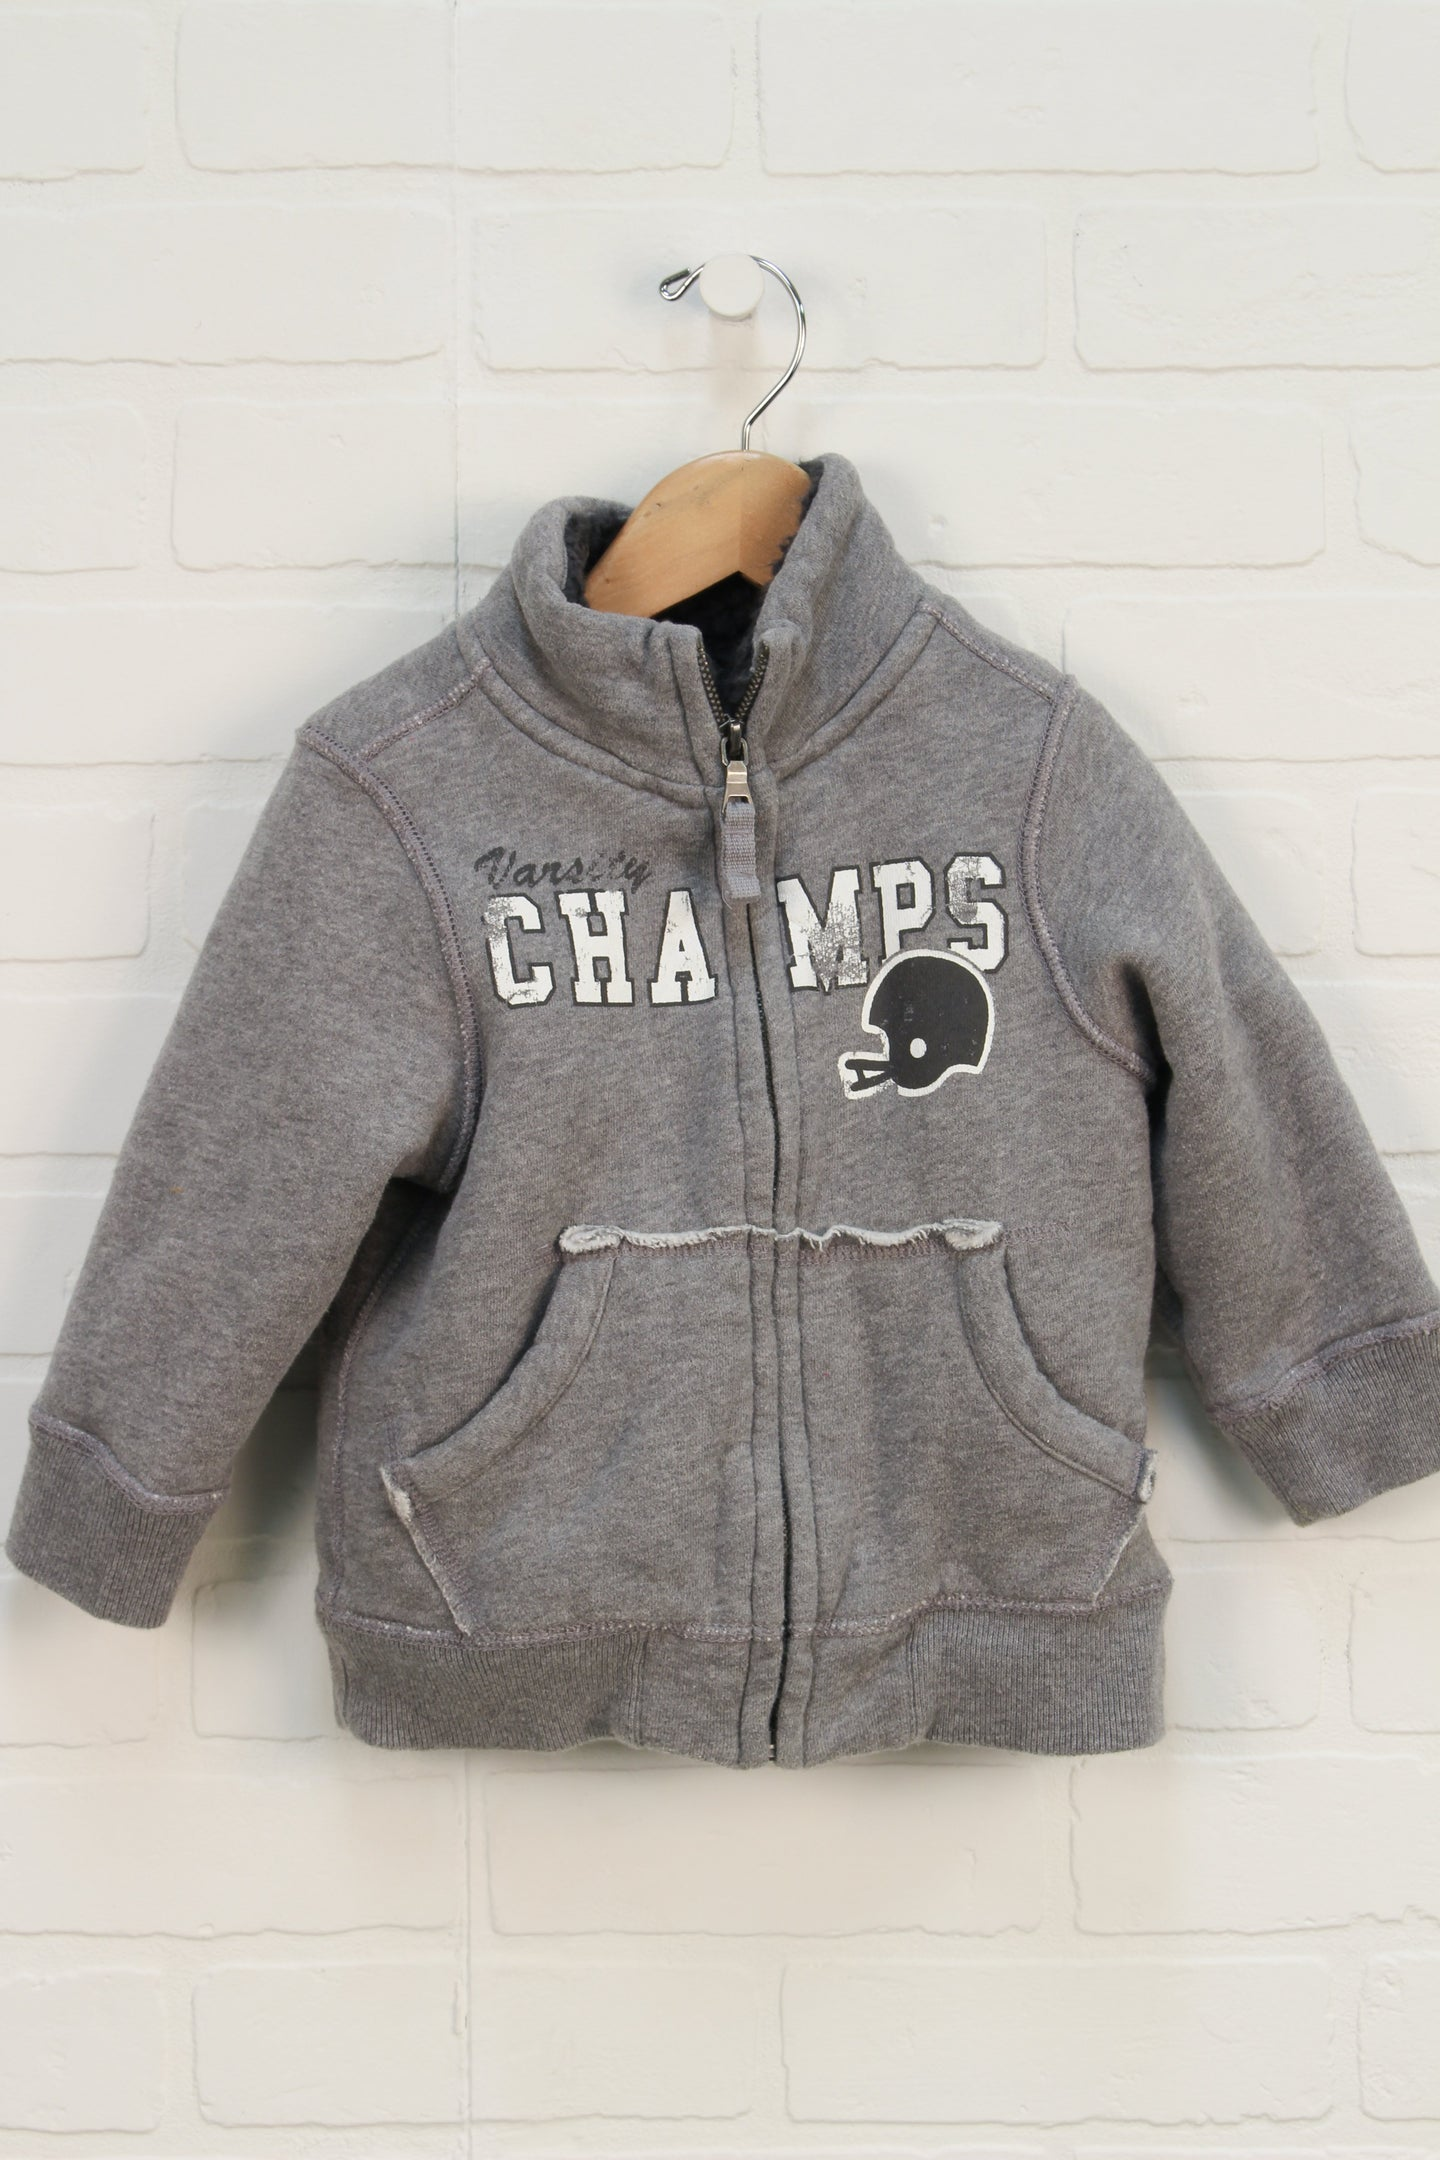 Heathered Grey Sherpa Lined Sweatshirt (Size 24M)